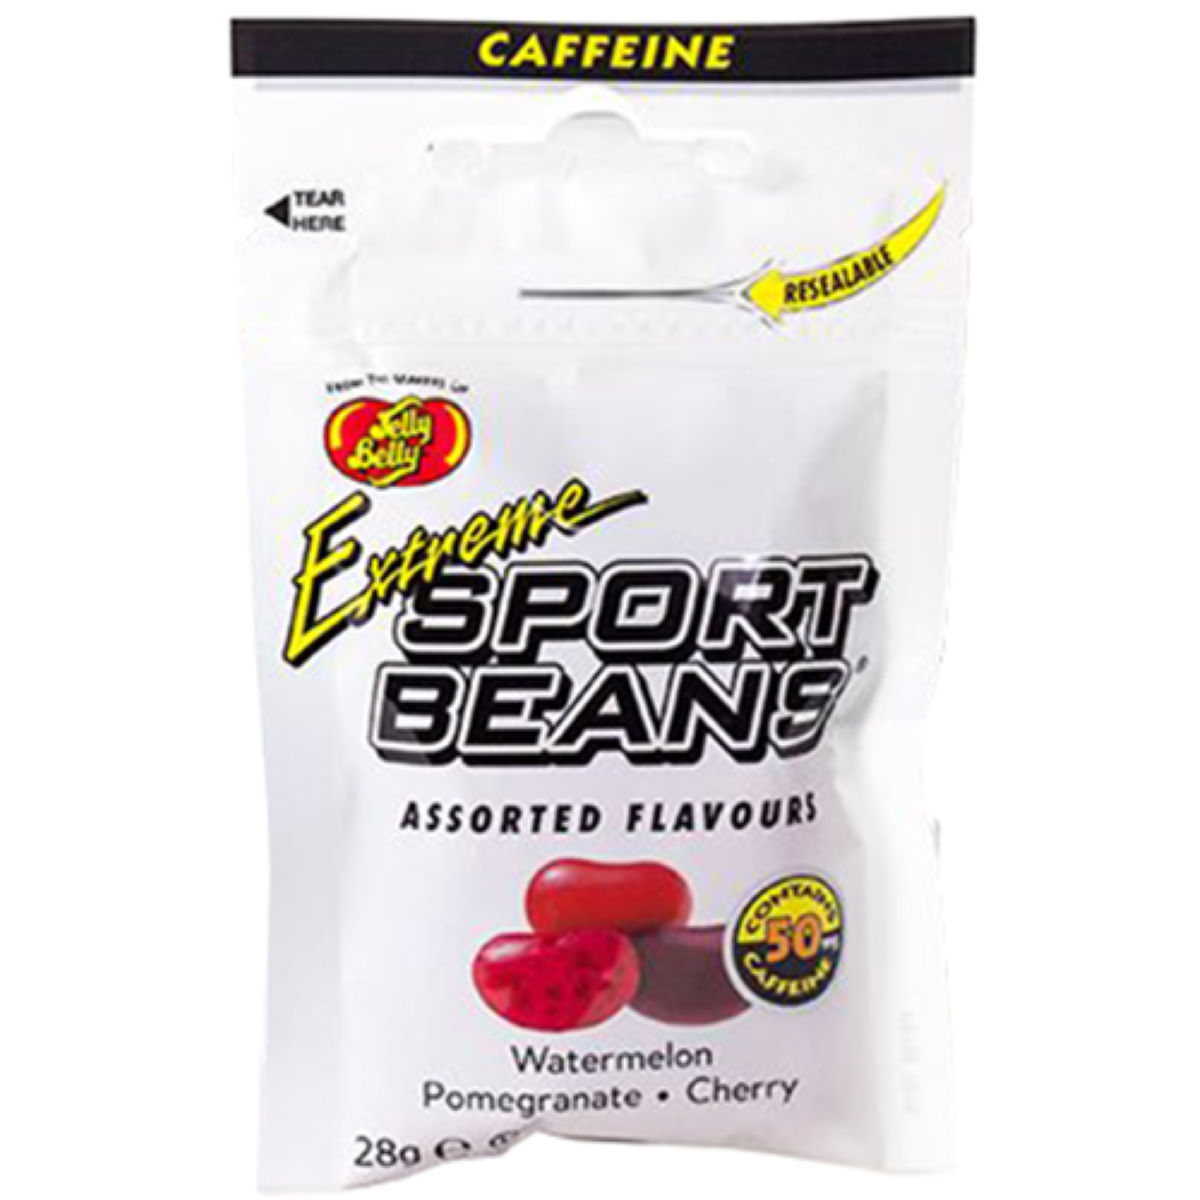 Jelly Belly Jelly Belly Extreme Sports Beans (5 x 28g)   Chews